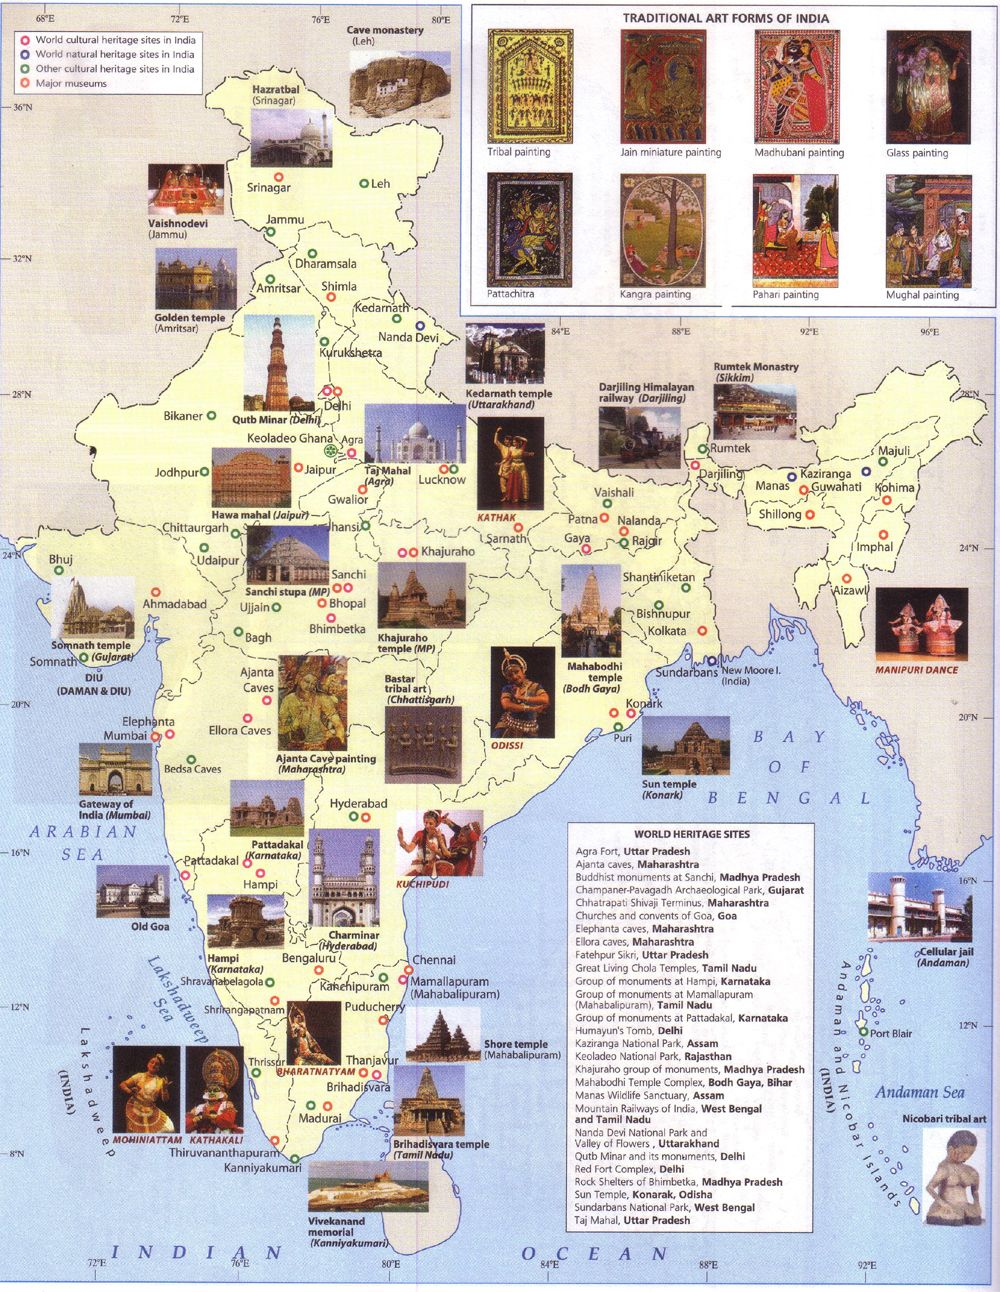 Taj Mahal | For the Home in 2019 | World heritage sites, India map on india castle, india city, india world maps that show, india location on world map, unesco world heritage sites map, interactive sites map, jim corbett national park map, india globe, mexico world heritage sites map, agra india world map, india attractions, afghanistan on world map, japan world heritage sites map, usa world heritage sites map, india asia landmarks monuments, romania world heritage sites map,